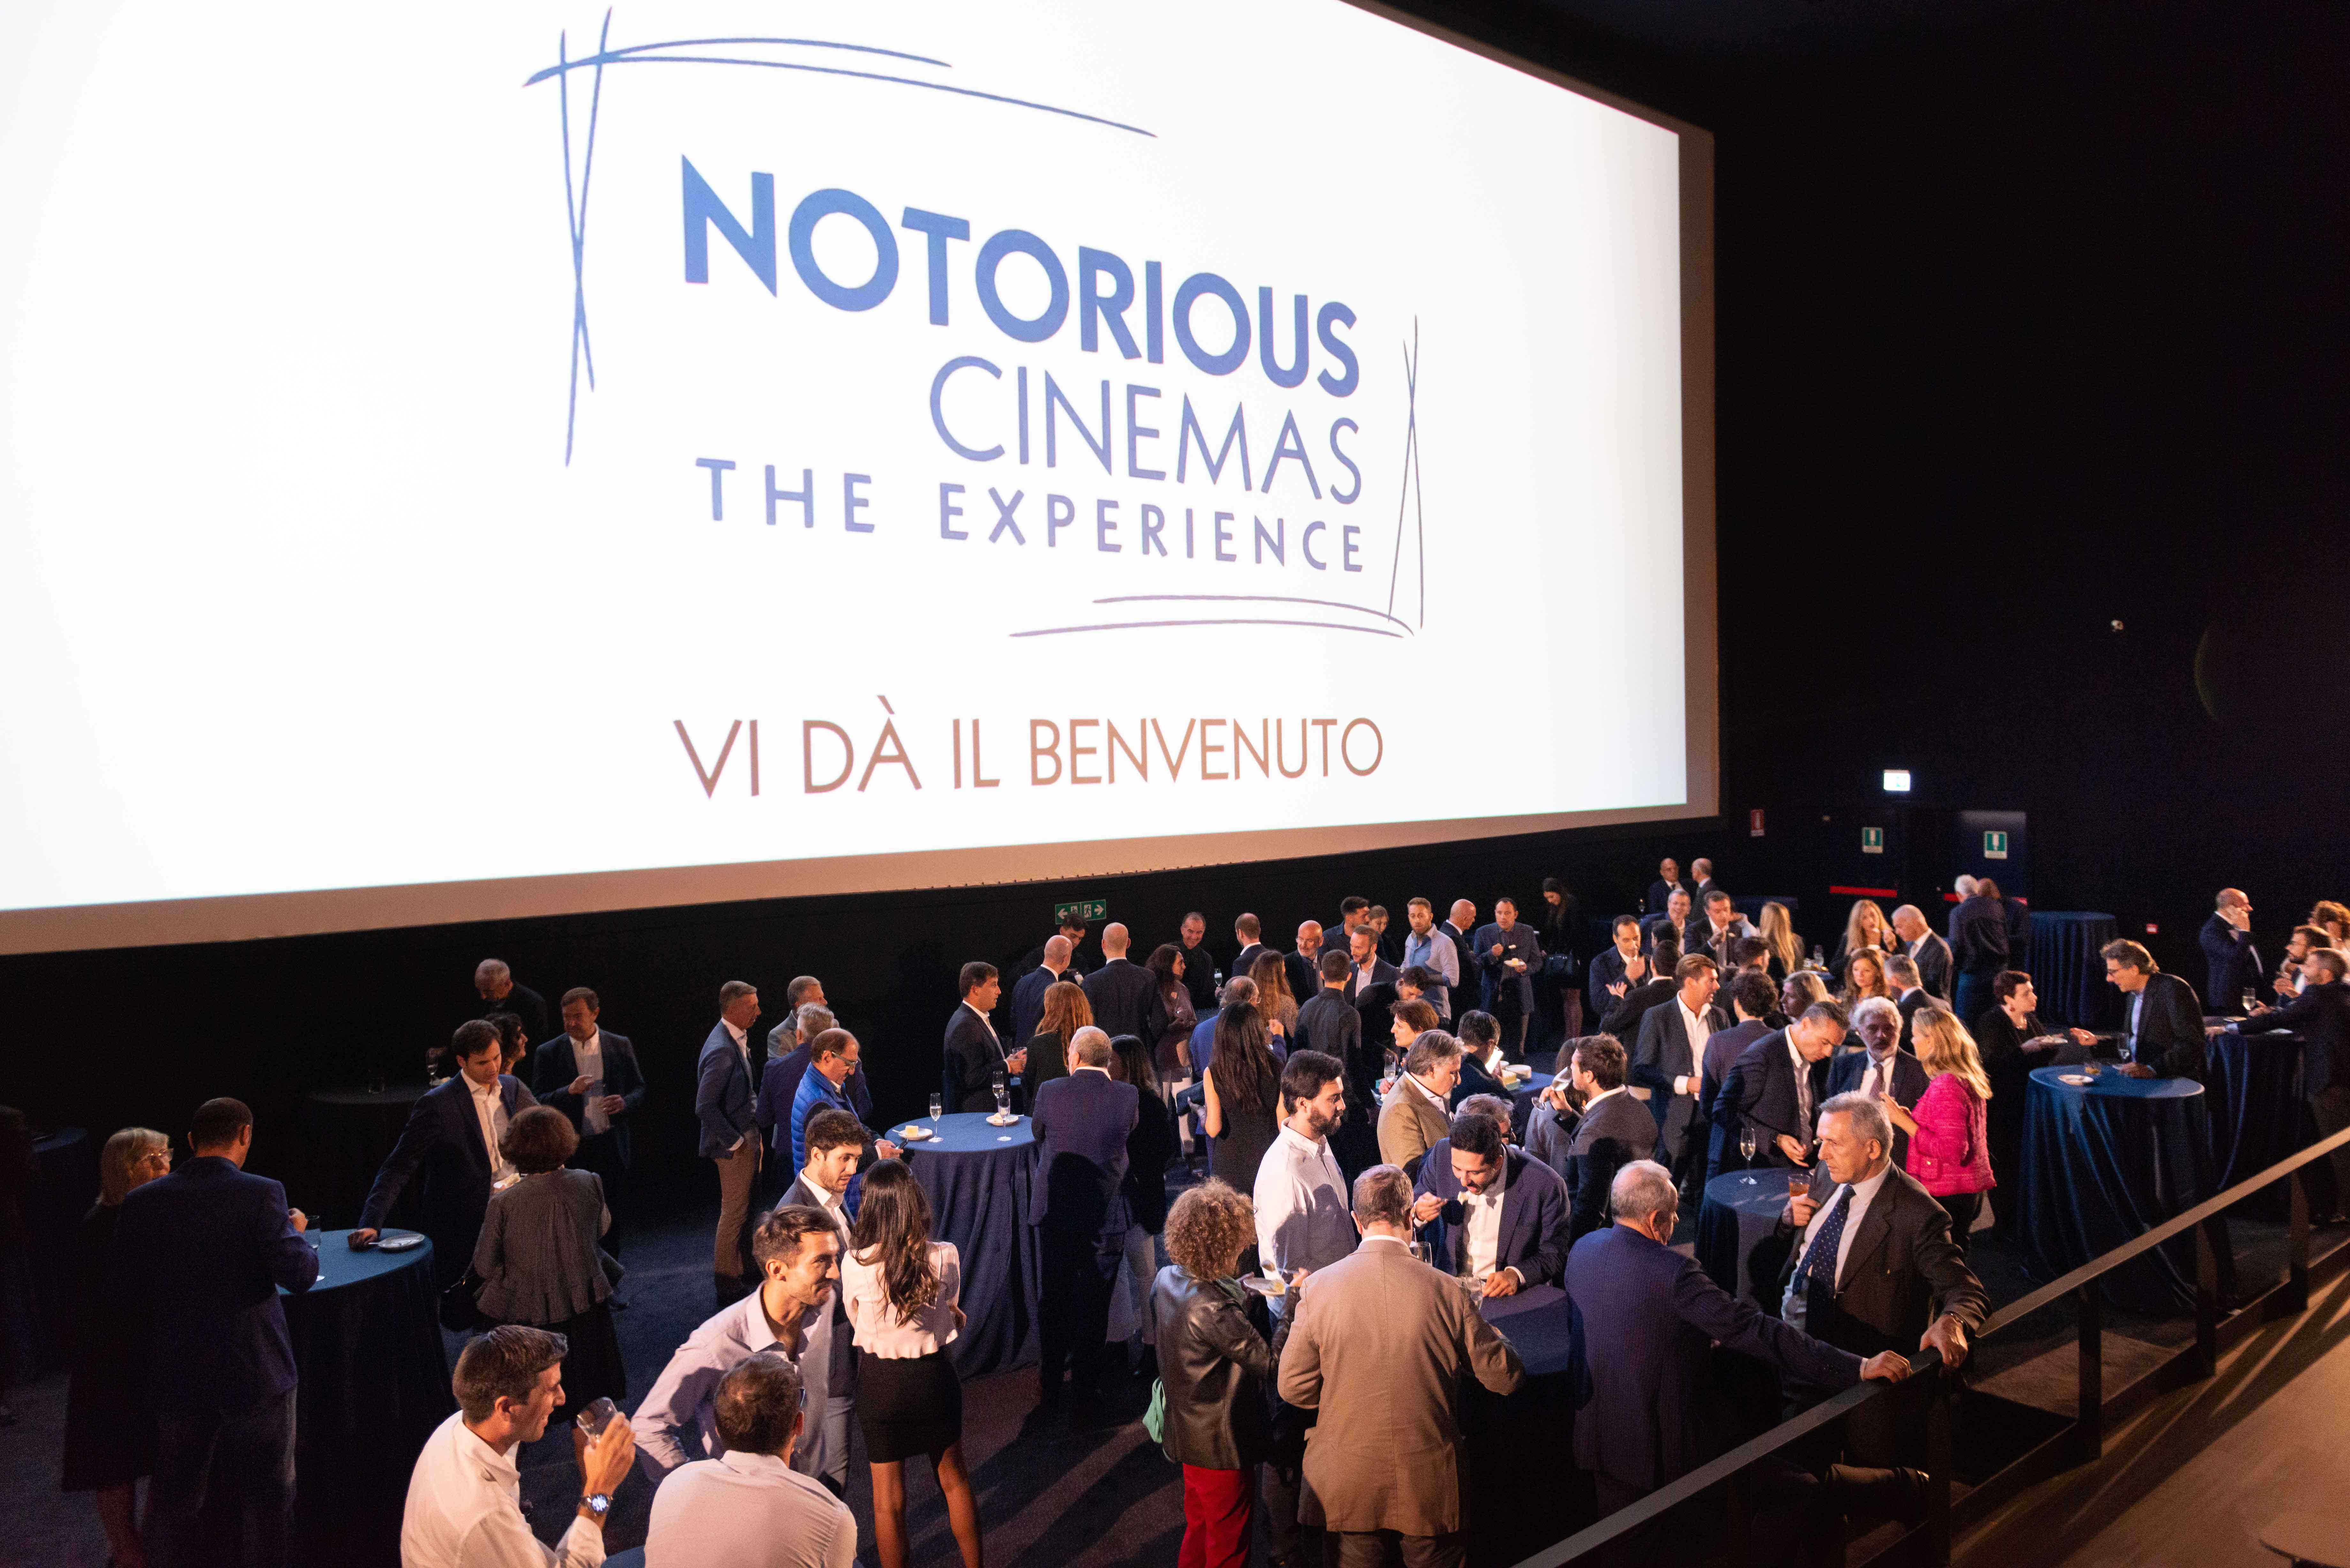 Notorious Cinemas - The Experience